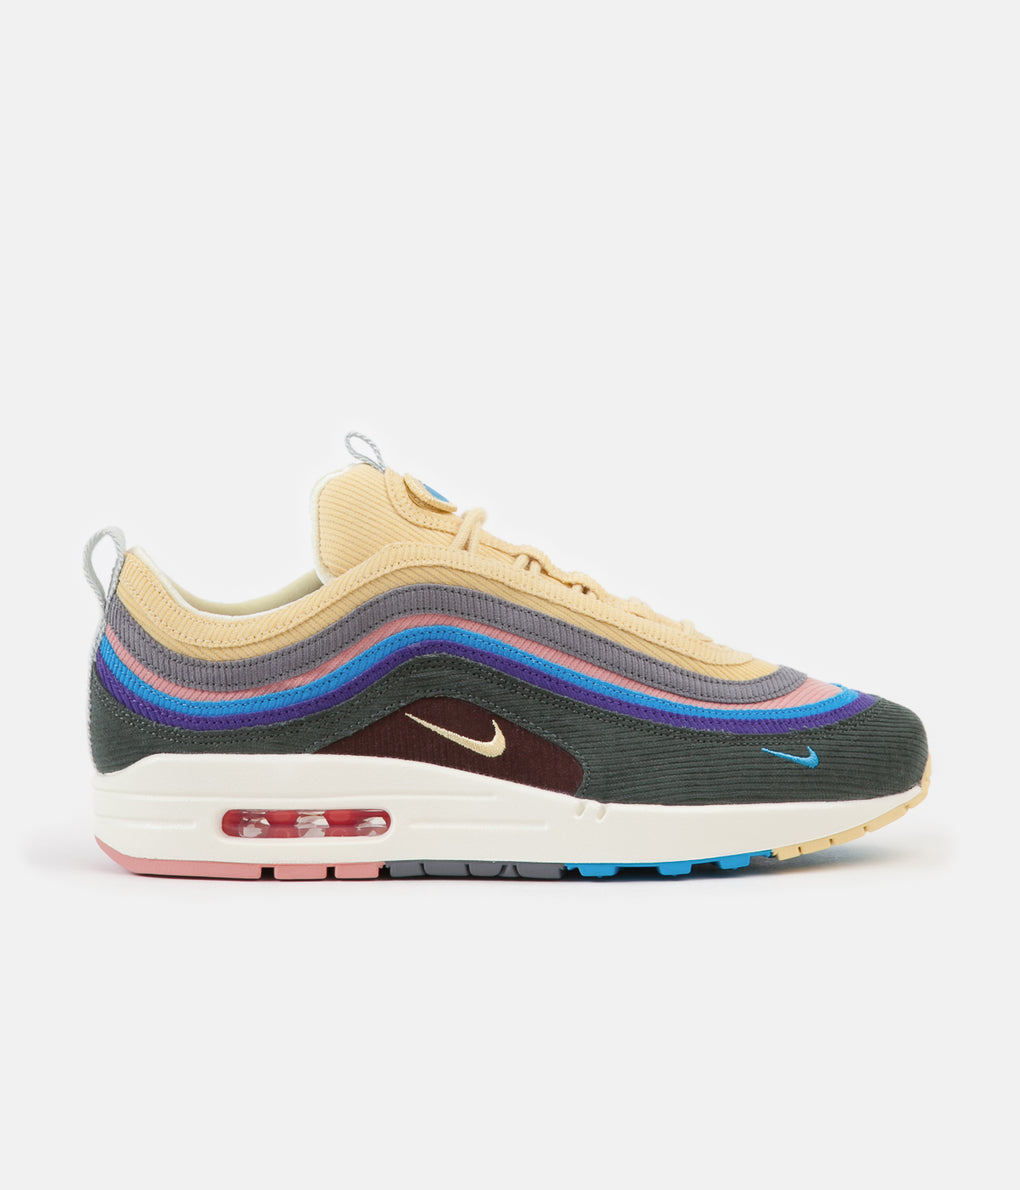 Nike Air Max 1/97 VF Sean Wotherspoon Shoes - Light Blue Fury / Lemon Wash - Vintage Green